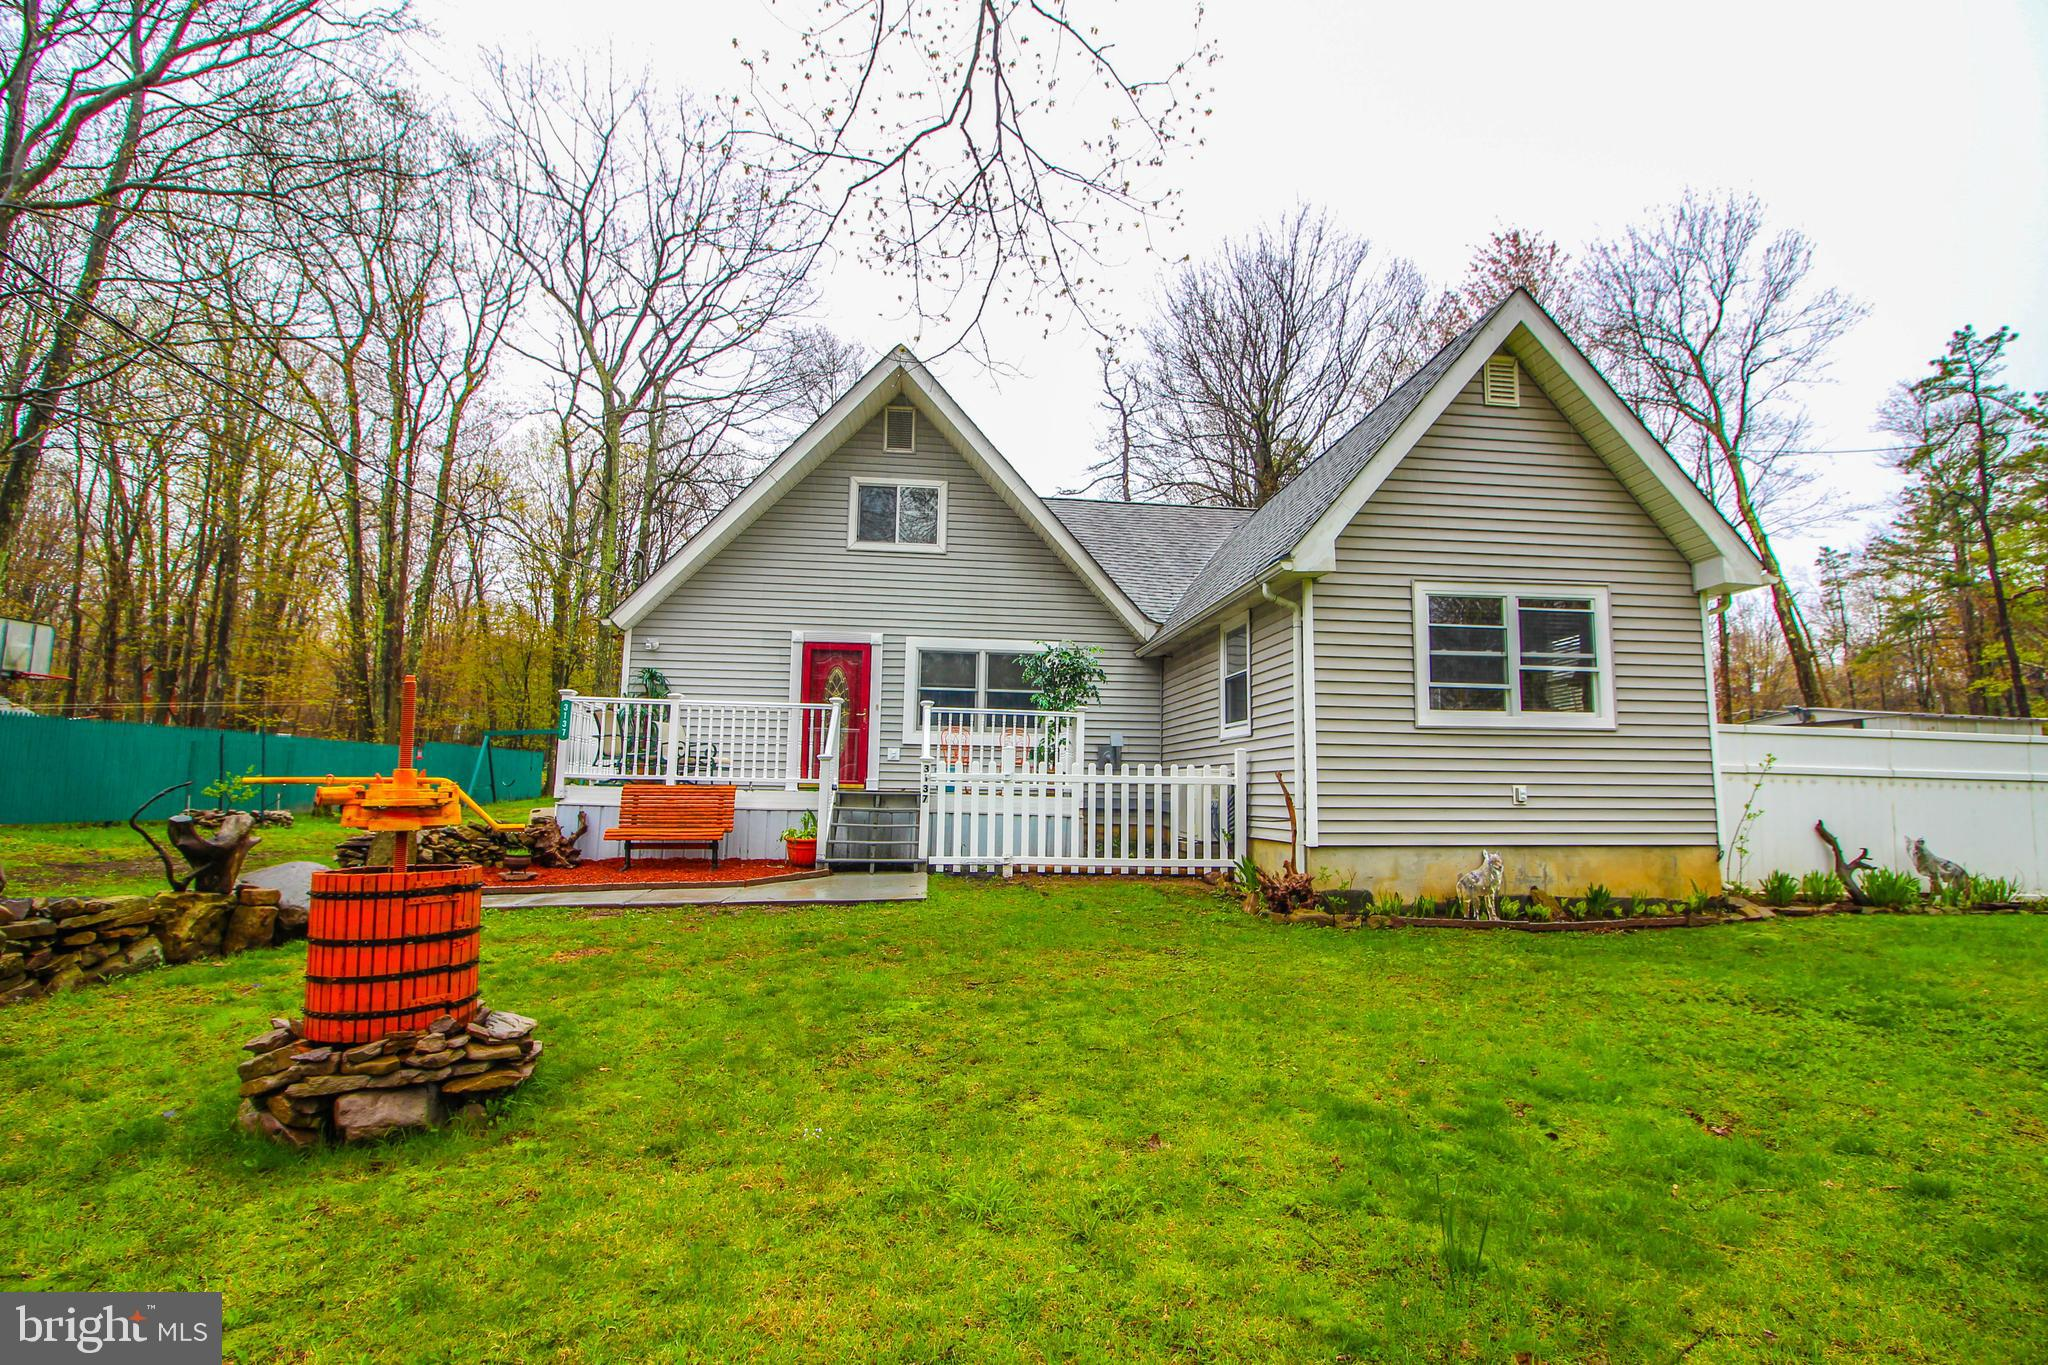 3137 FERN ROAD, POCONO SUMMIT, PA 18346